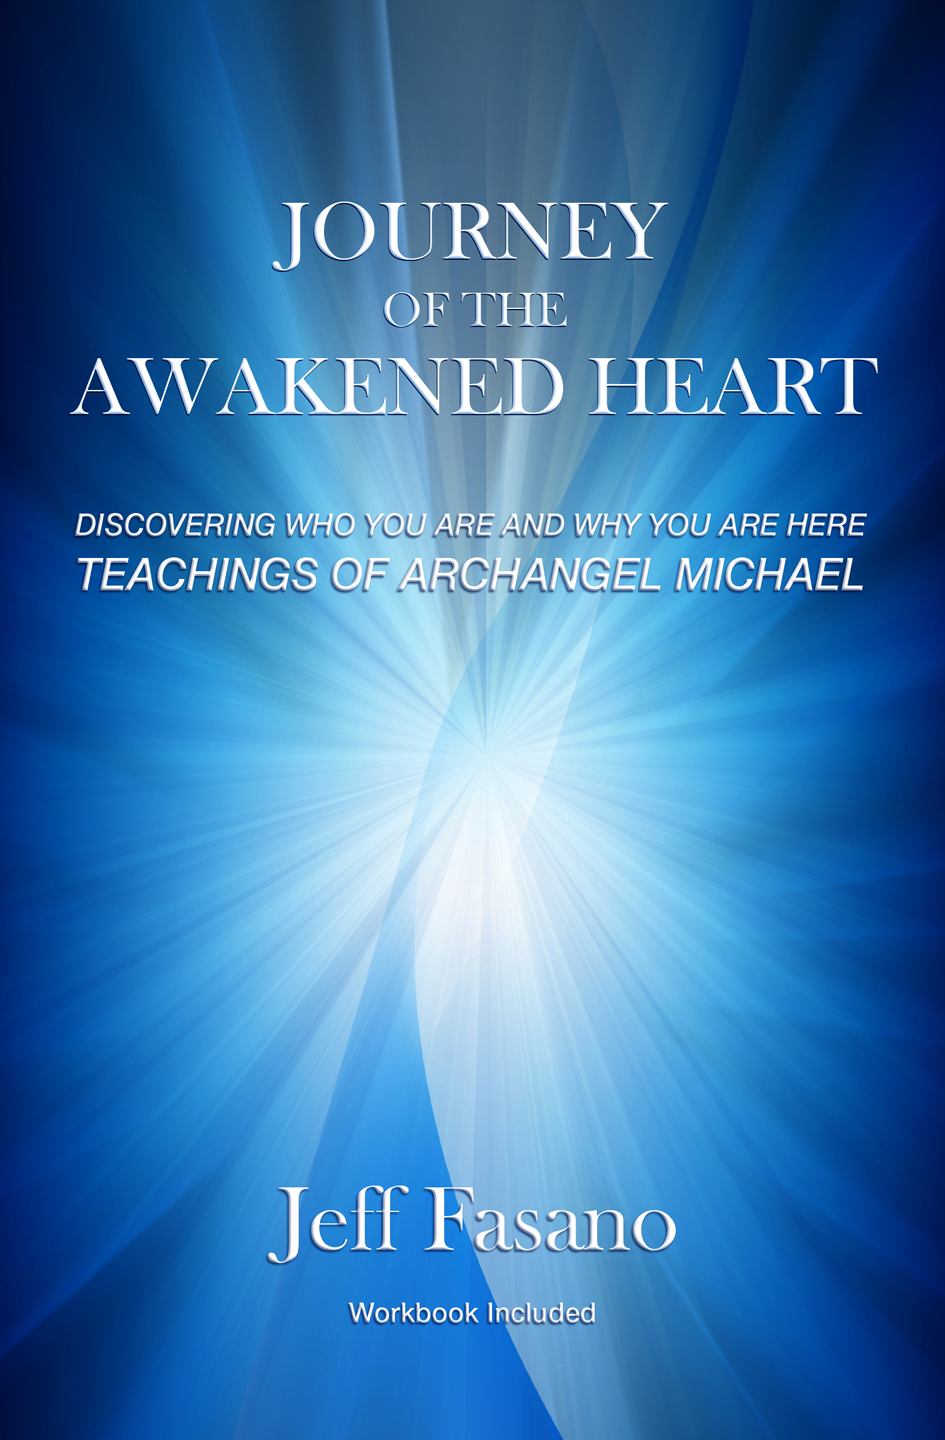 Journey of the Awakened Heart